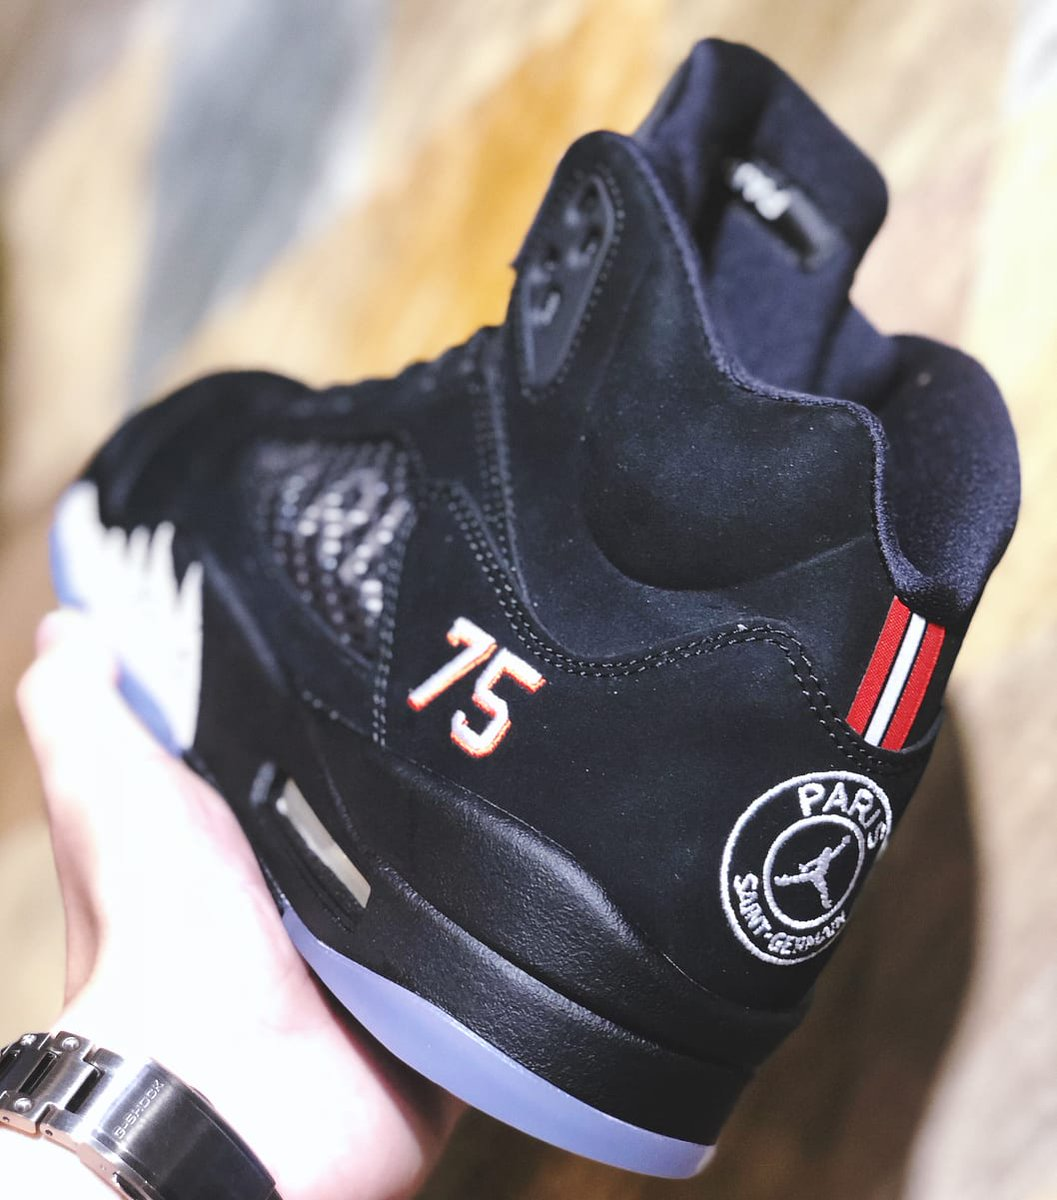 Paris saint-germain s air jordan 5 will cost  225  - scoopnest.com 91b71625b